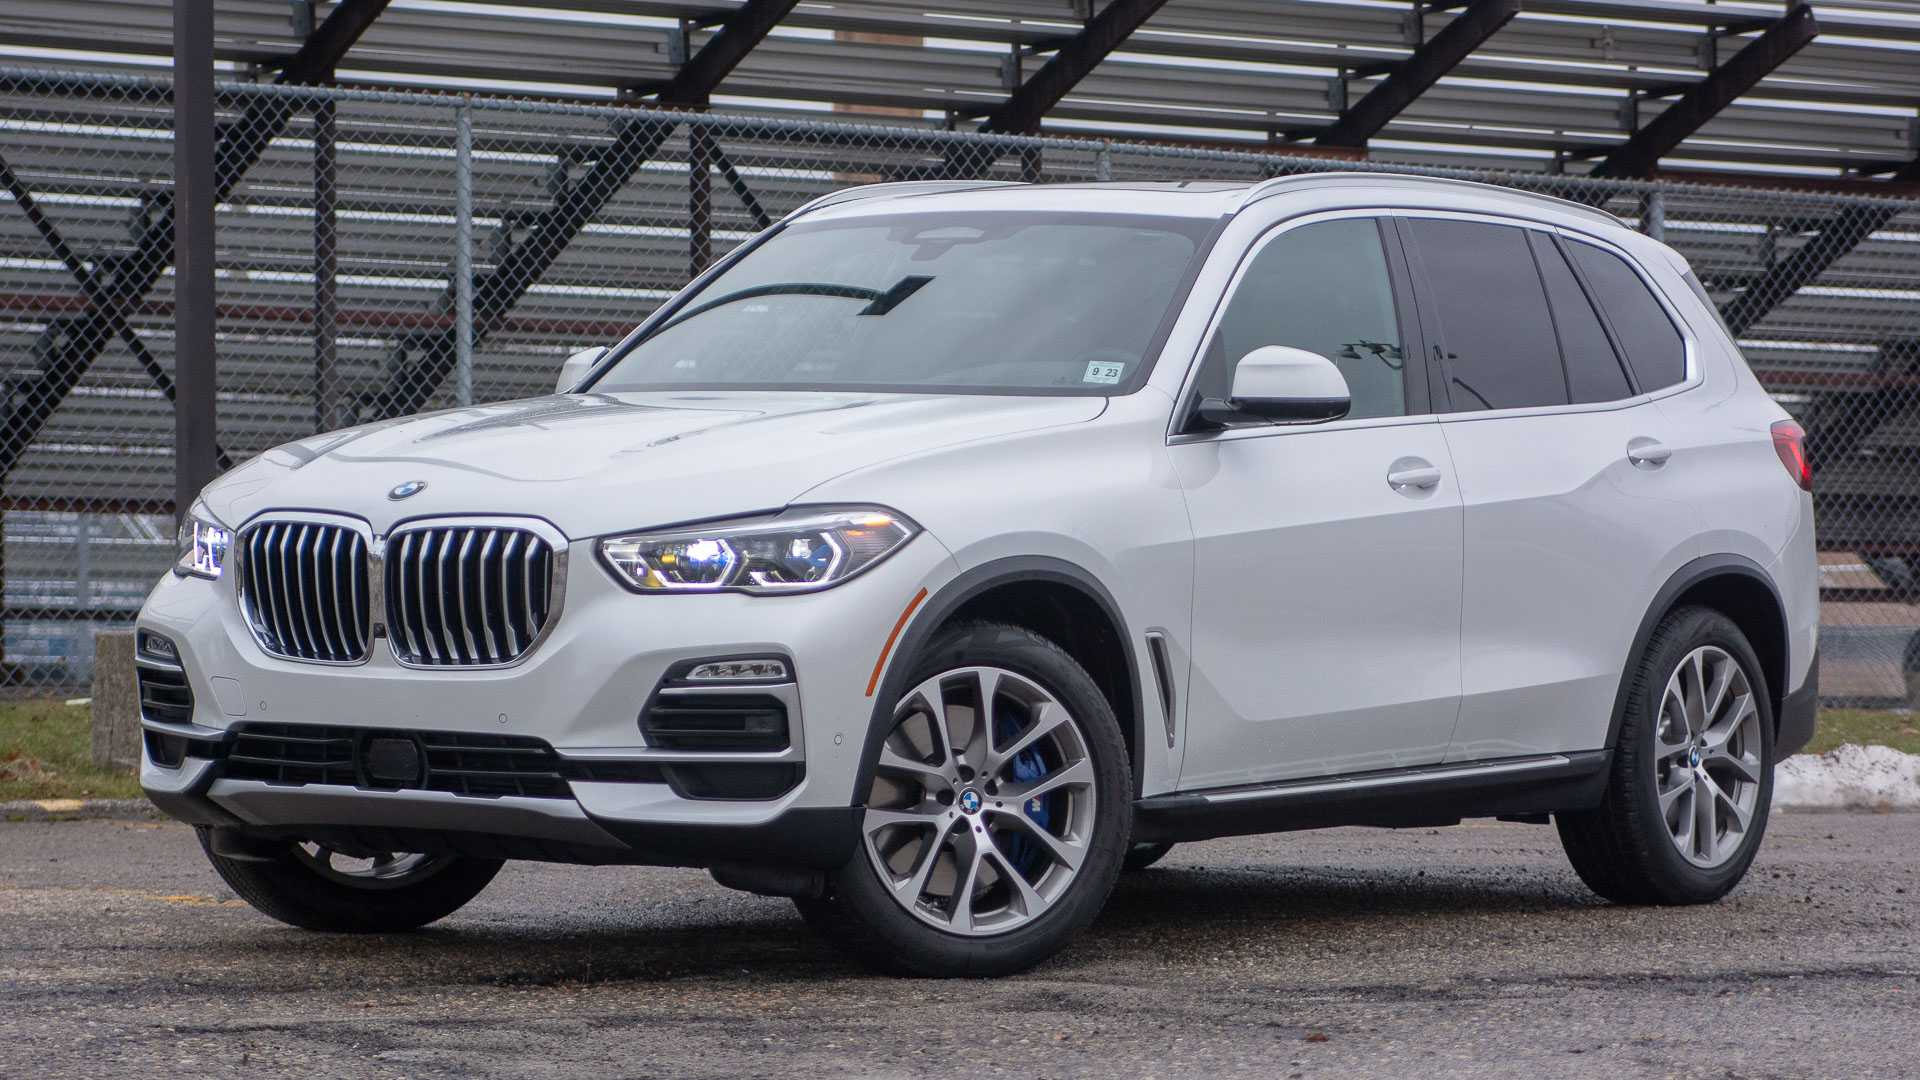 74 New 2019 Bmw X5 Concept for 2019 Bmw X5